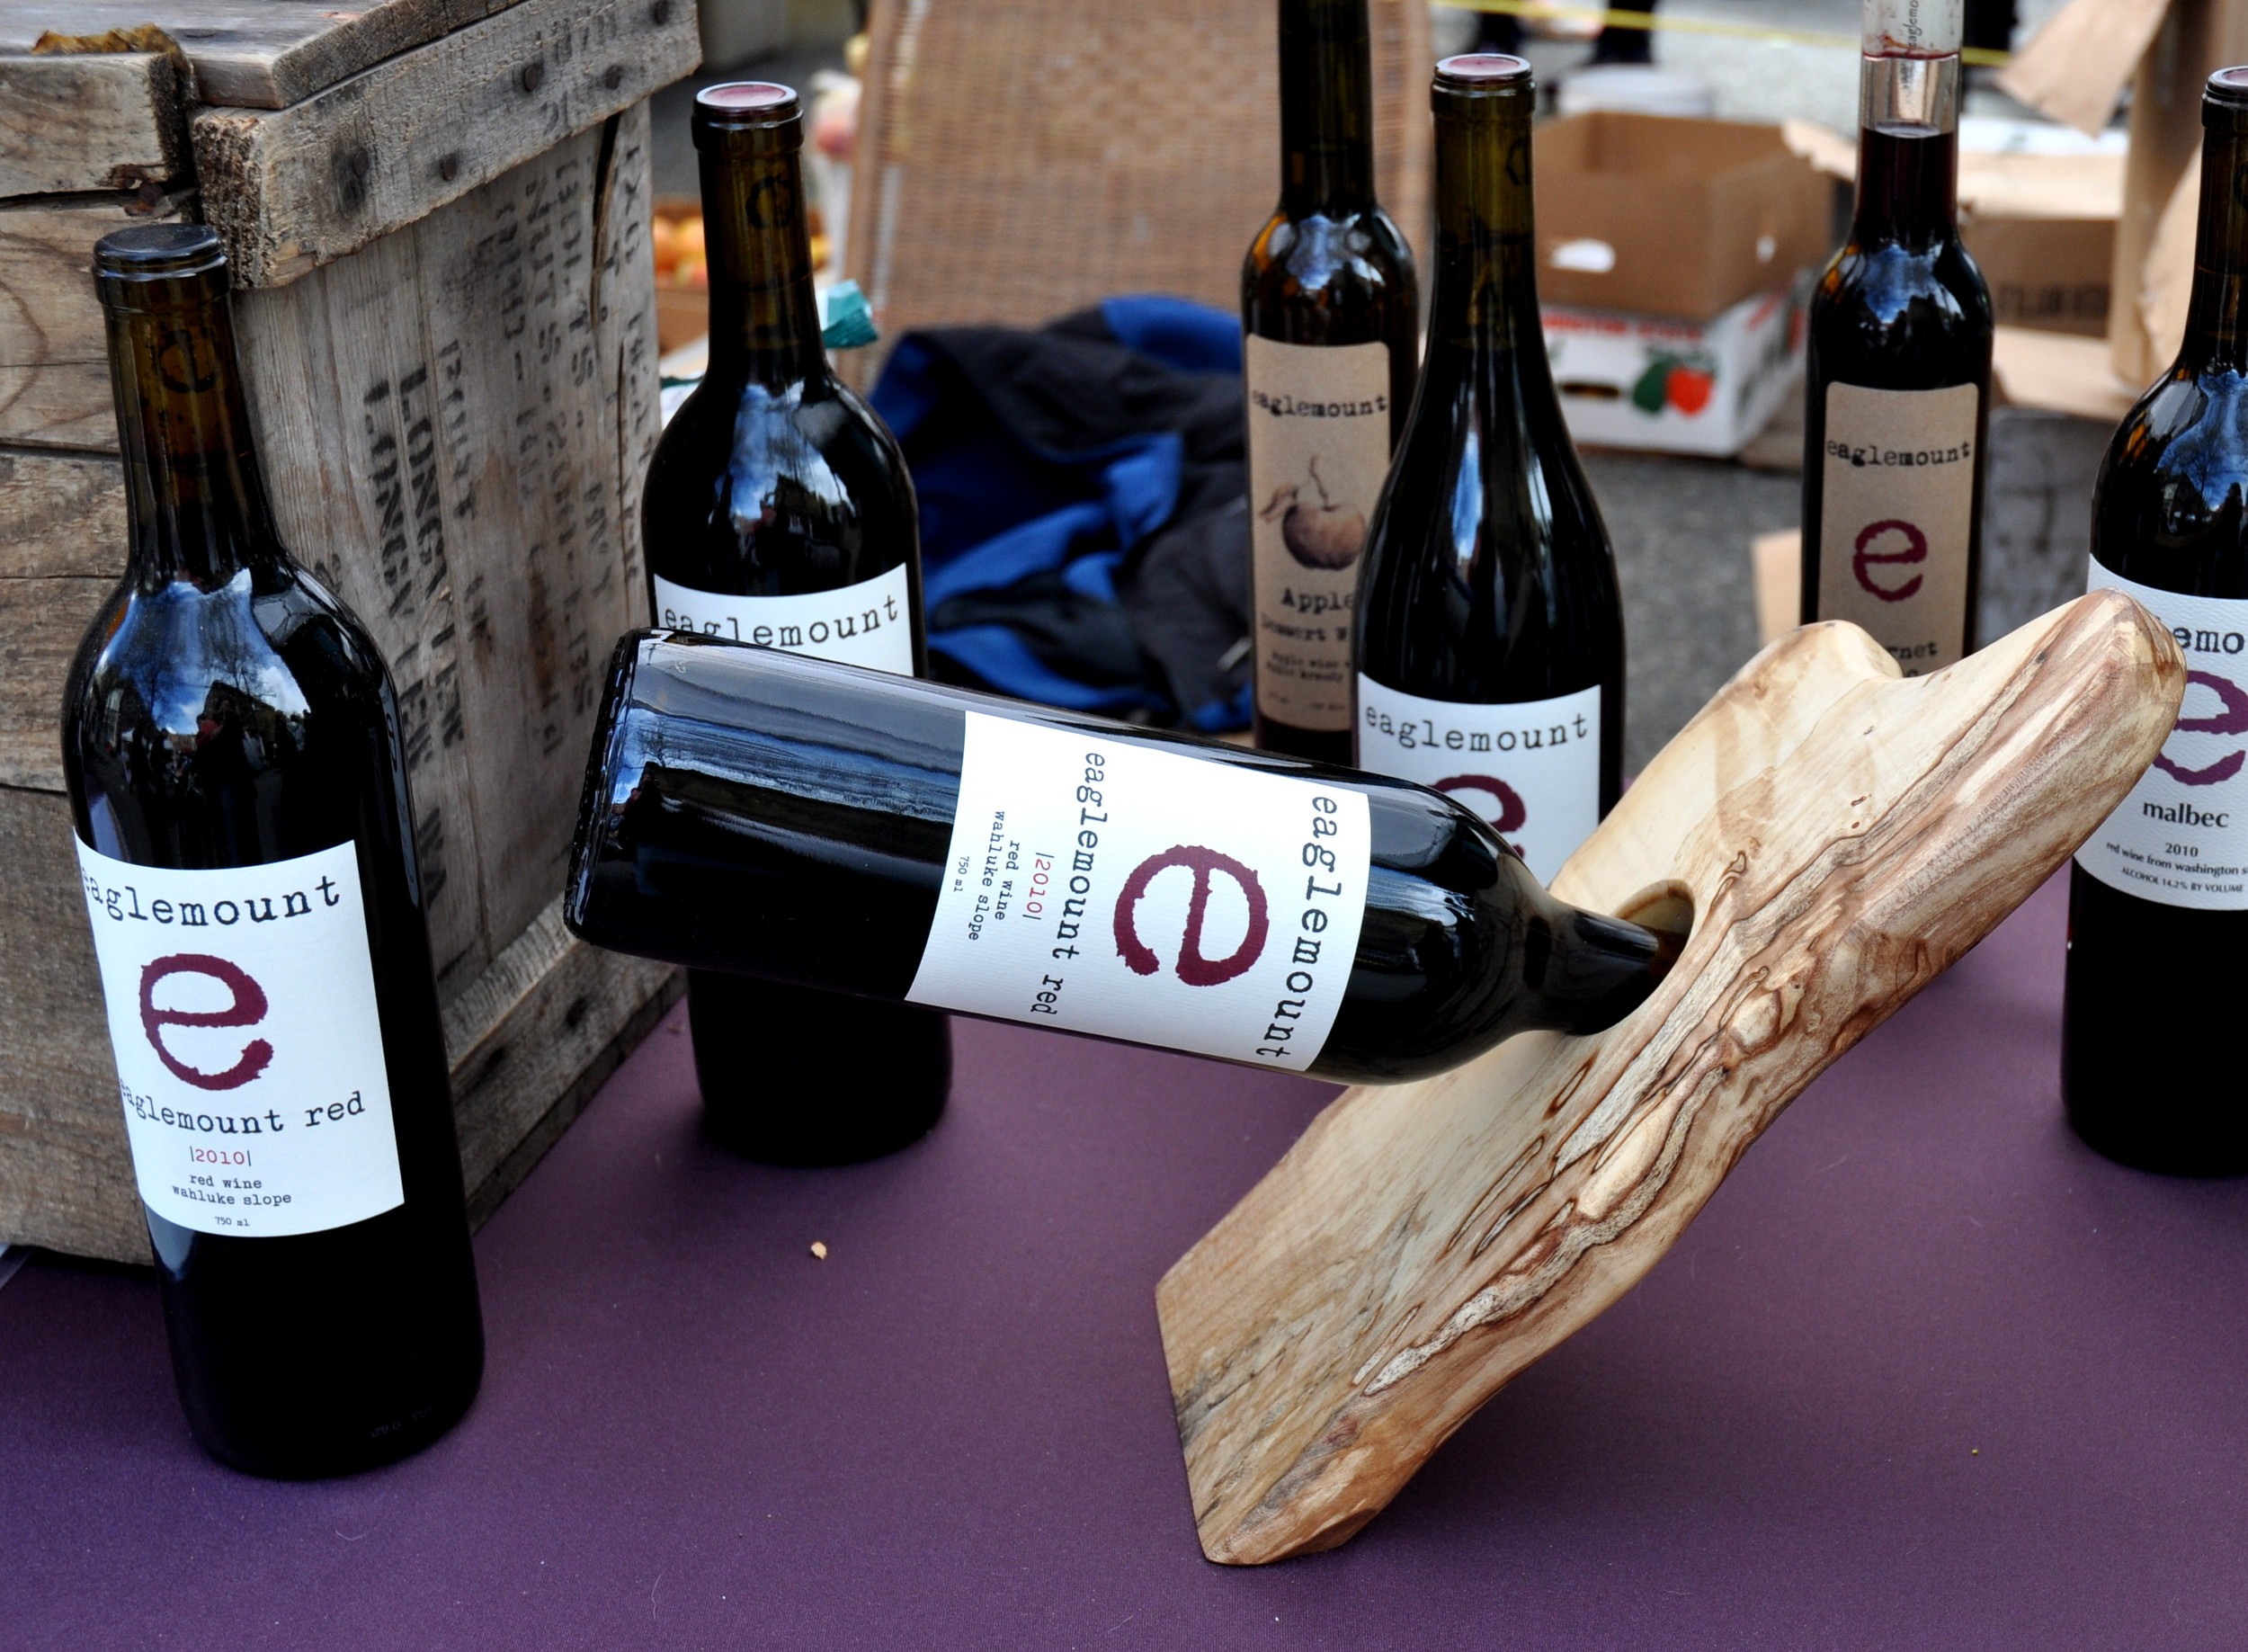 Eaglemount Red Wine defies gravityat Ballard Farmers Market! Copyright Zachary D. Lyons.